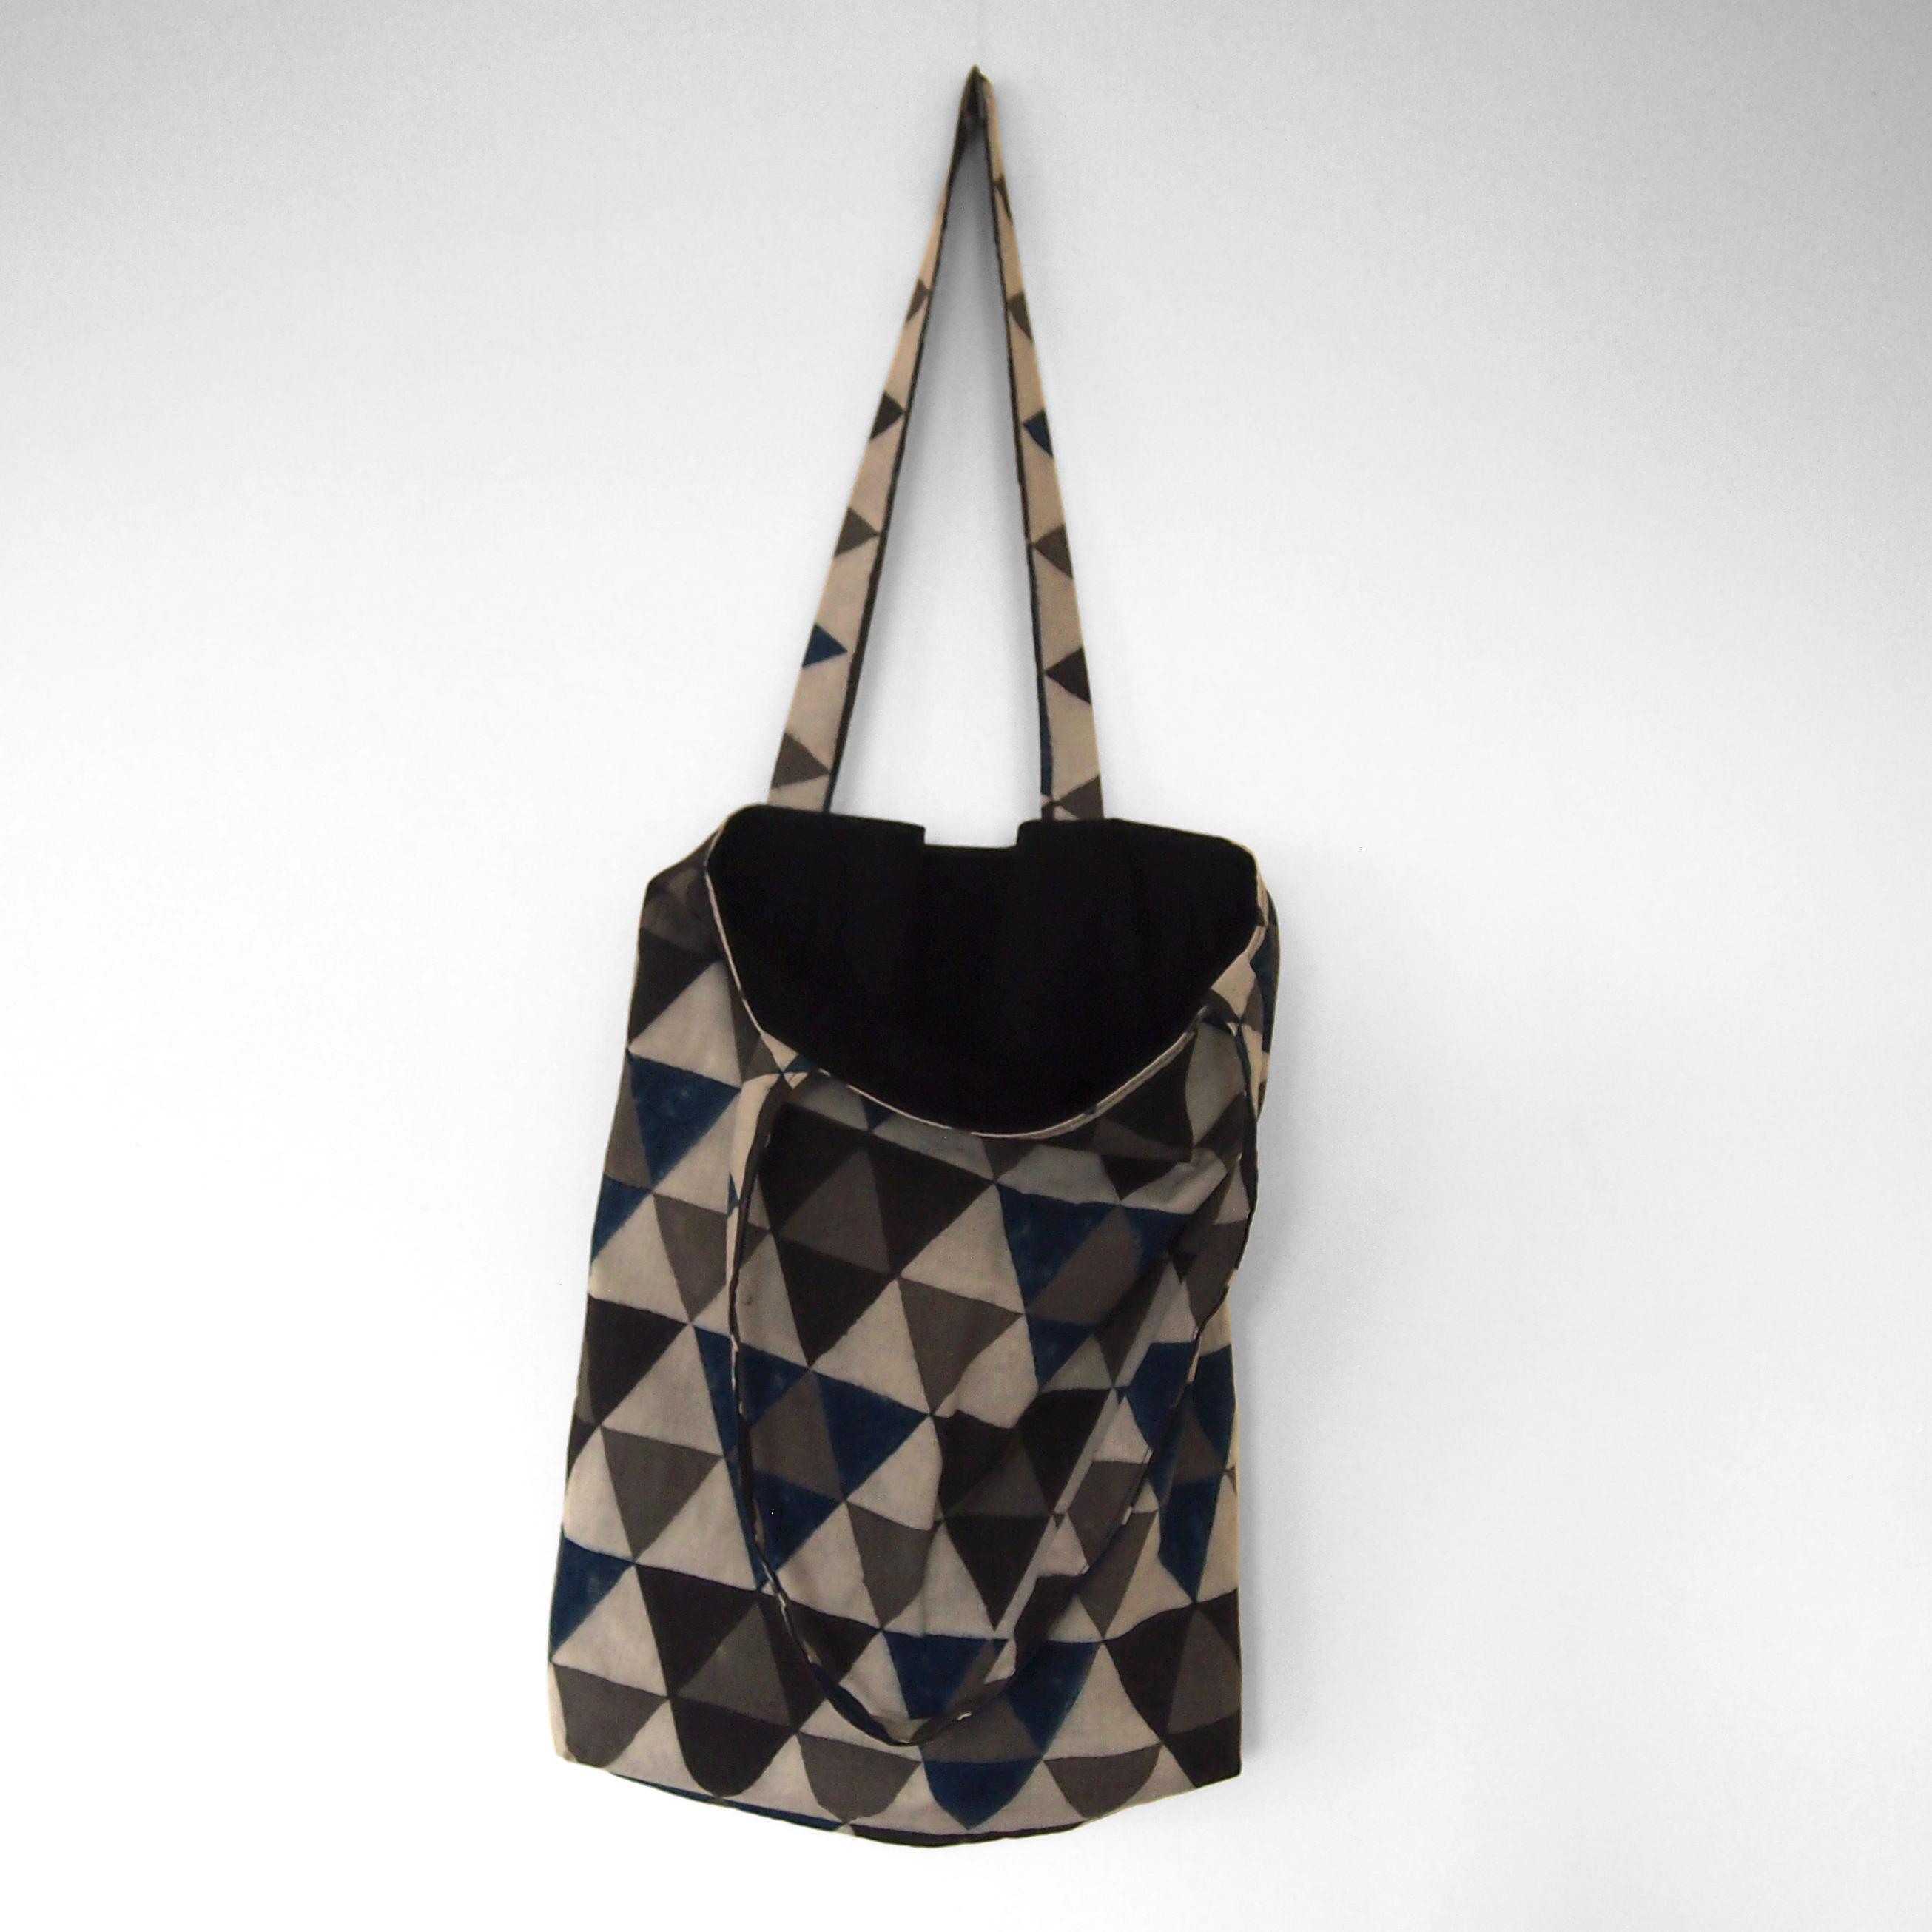 block printed cotton tote bag, natural dye, beige, blue black grey triangle design, lined with black cotton, open